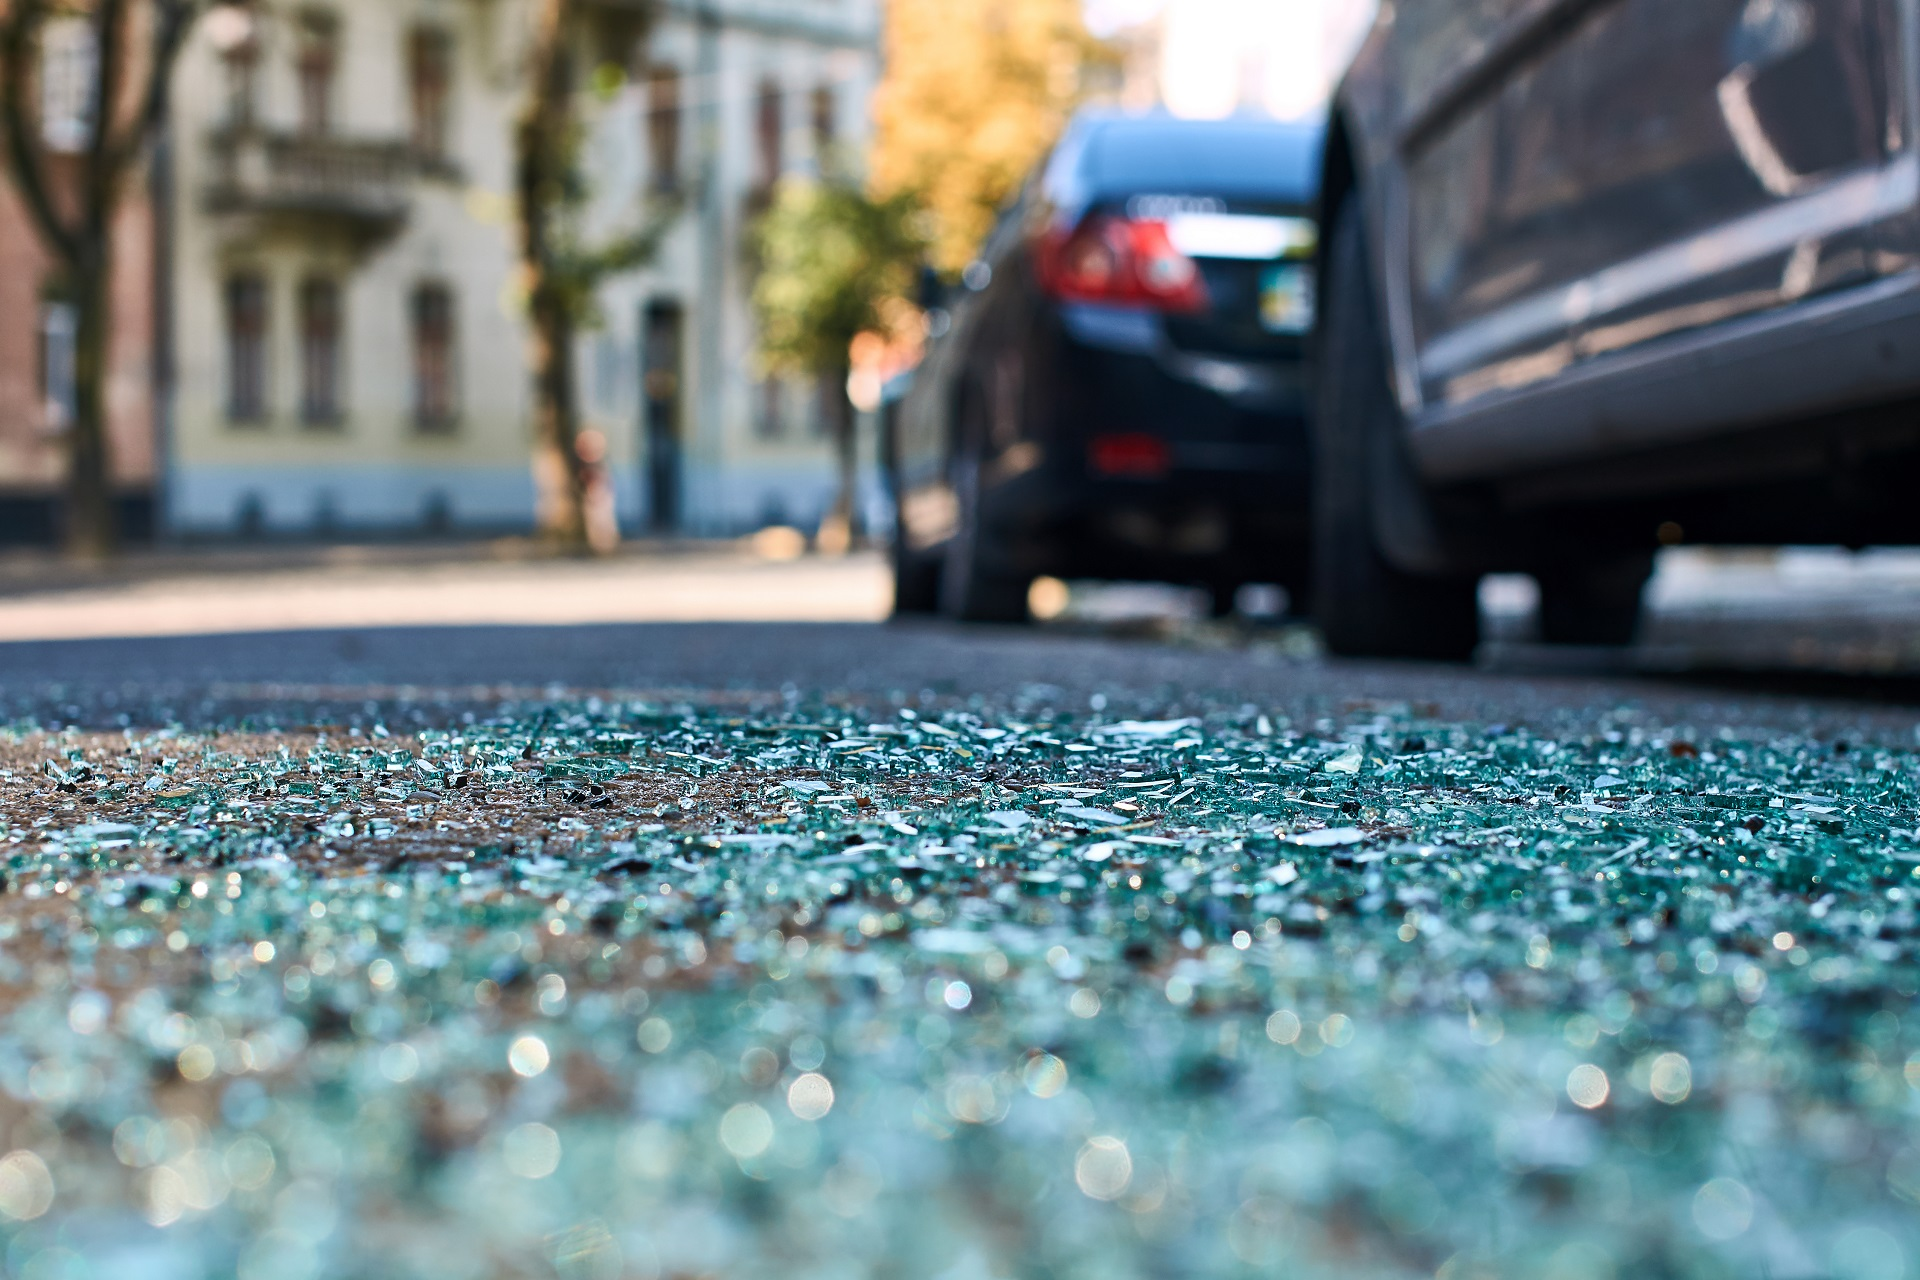 Shards of glass on the street after a car accident